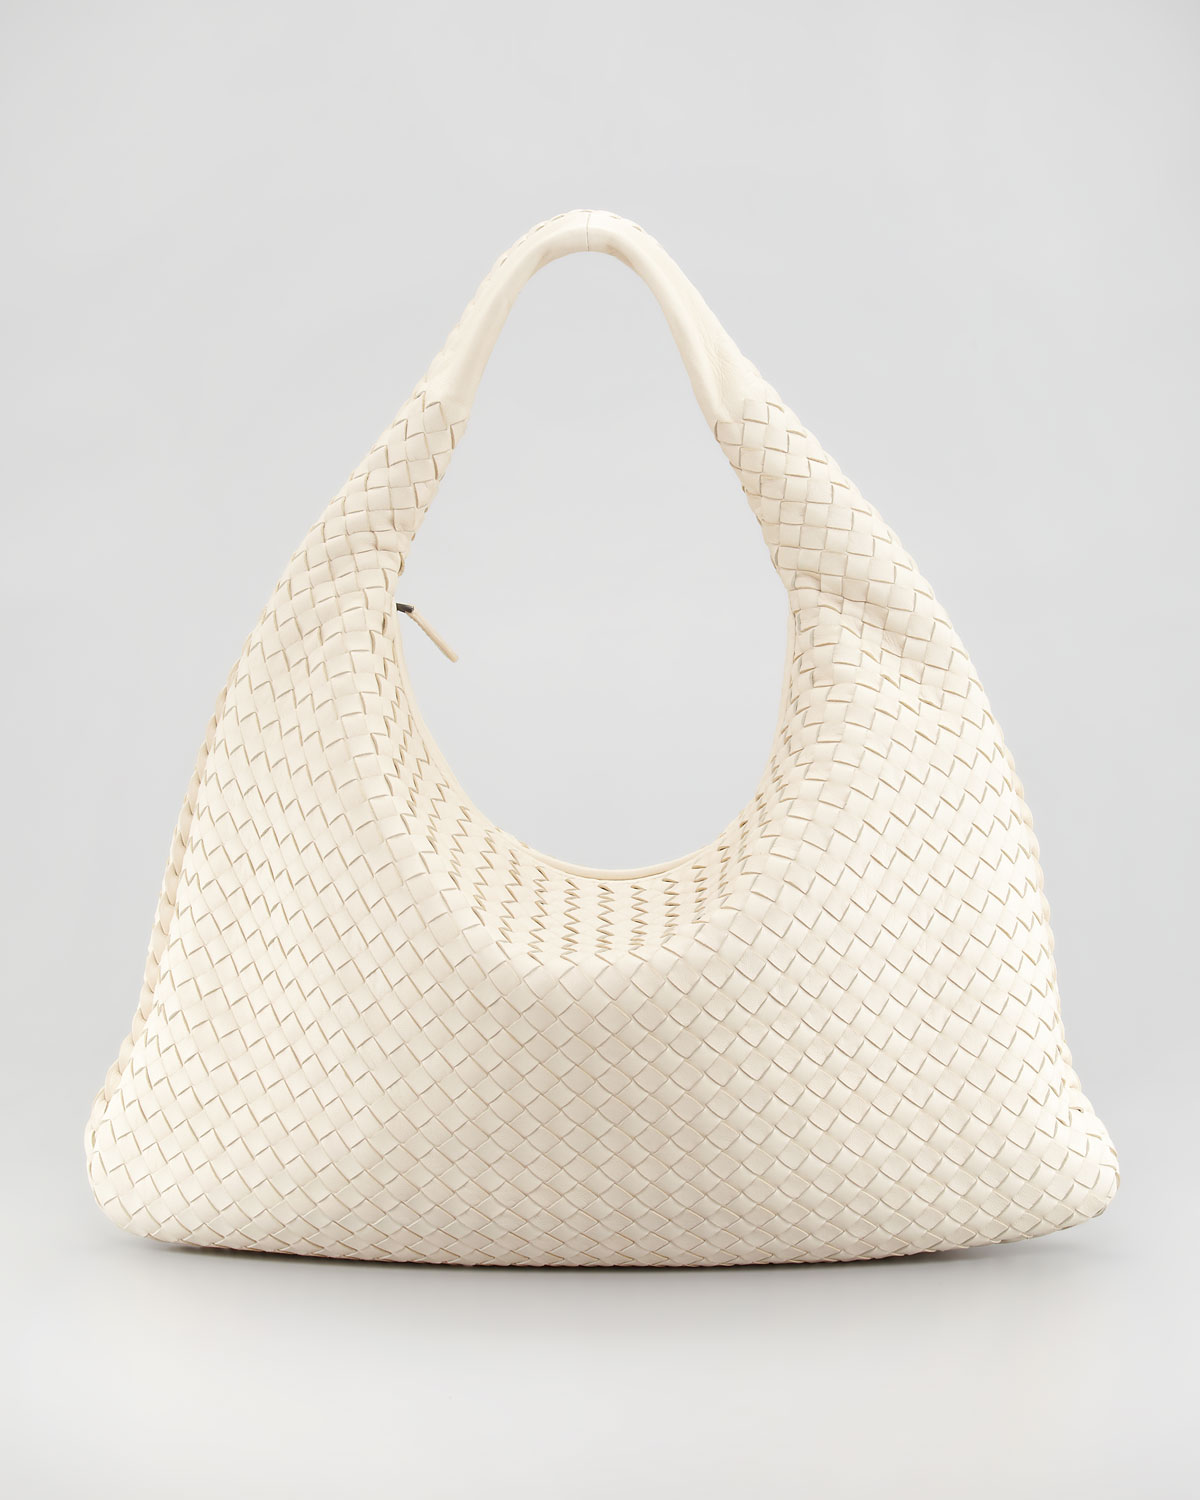 4fad1a0960 Lyst - Bottega Veneta Veneta Woven Hobo Bag Large in Natural